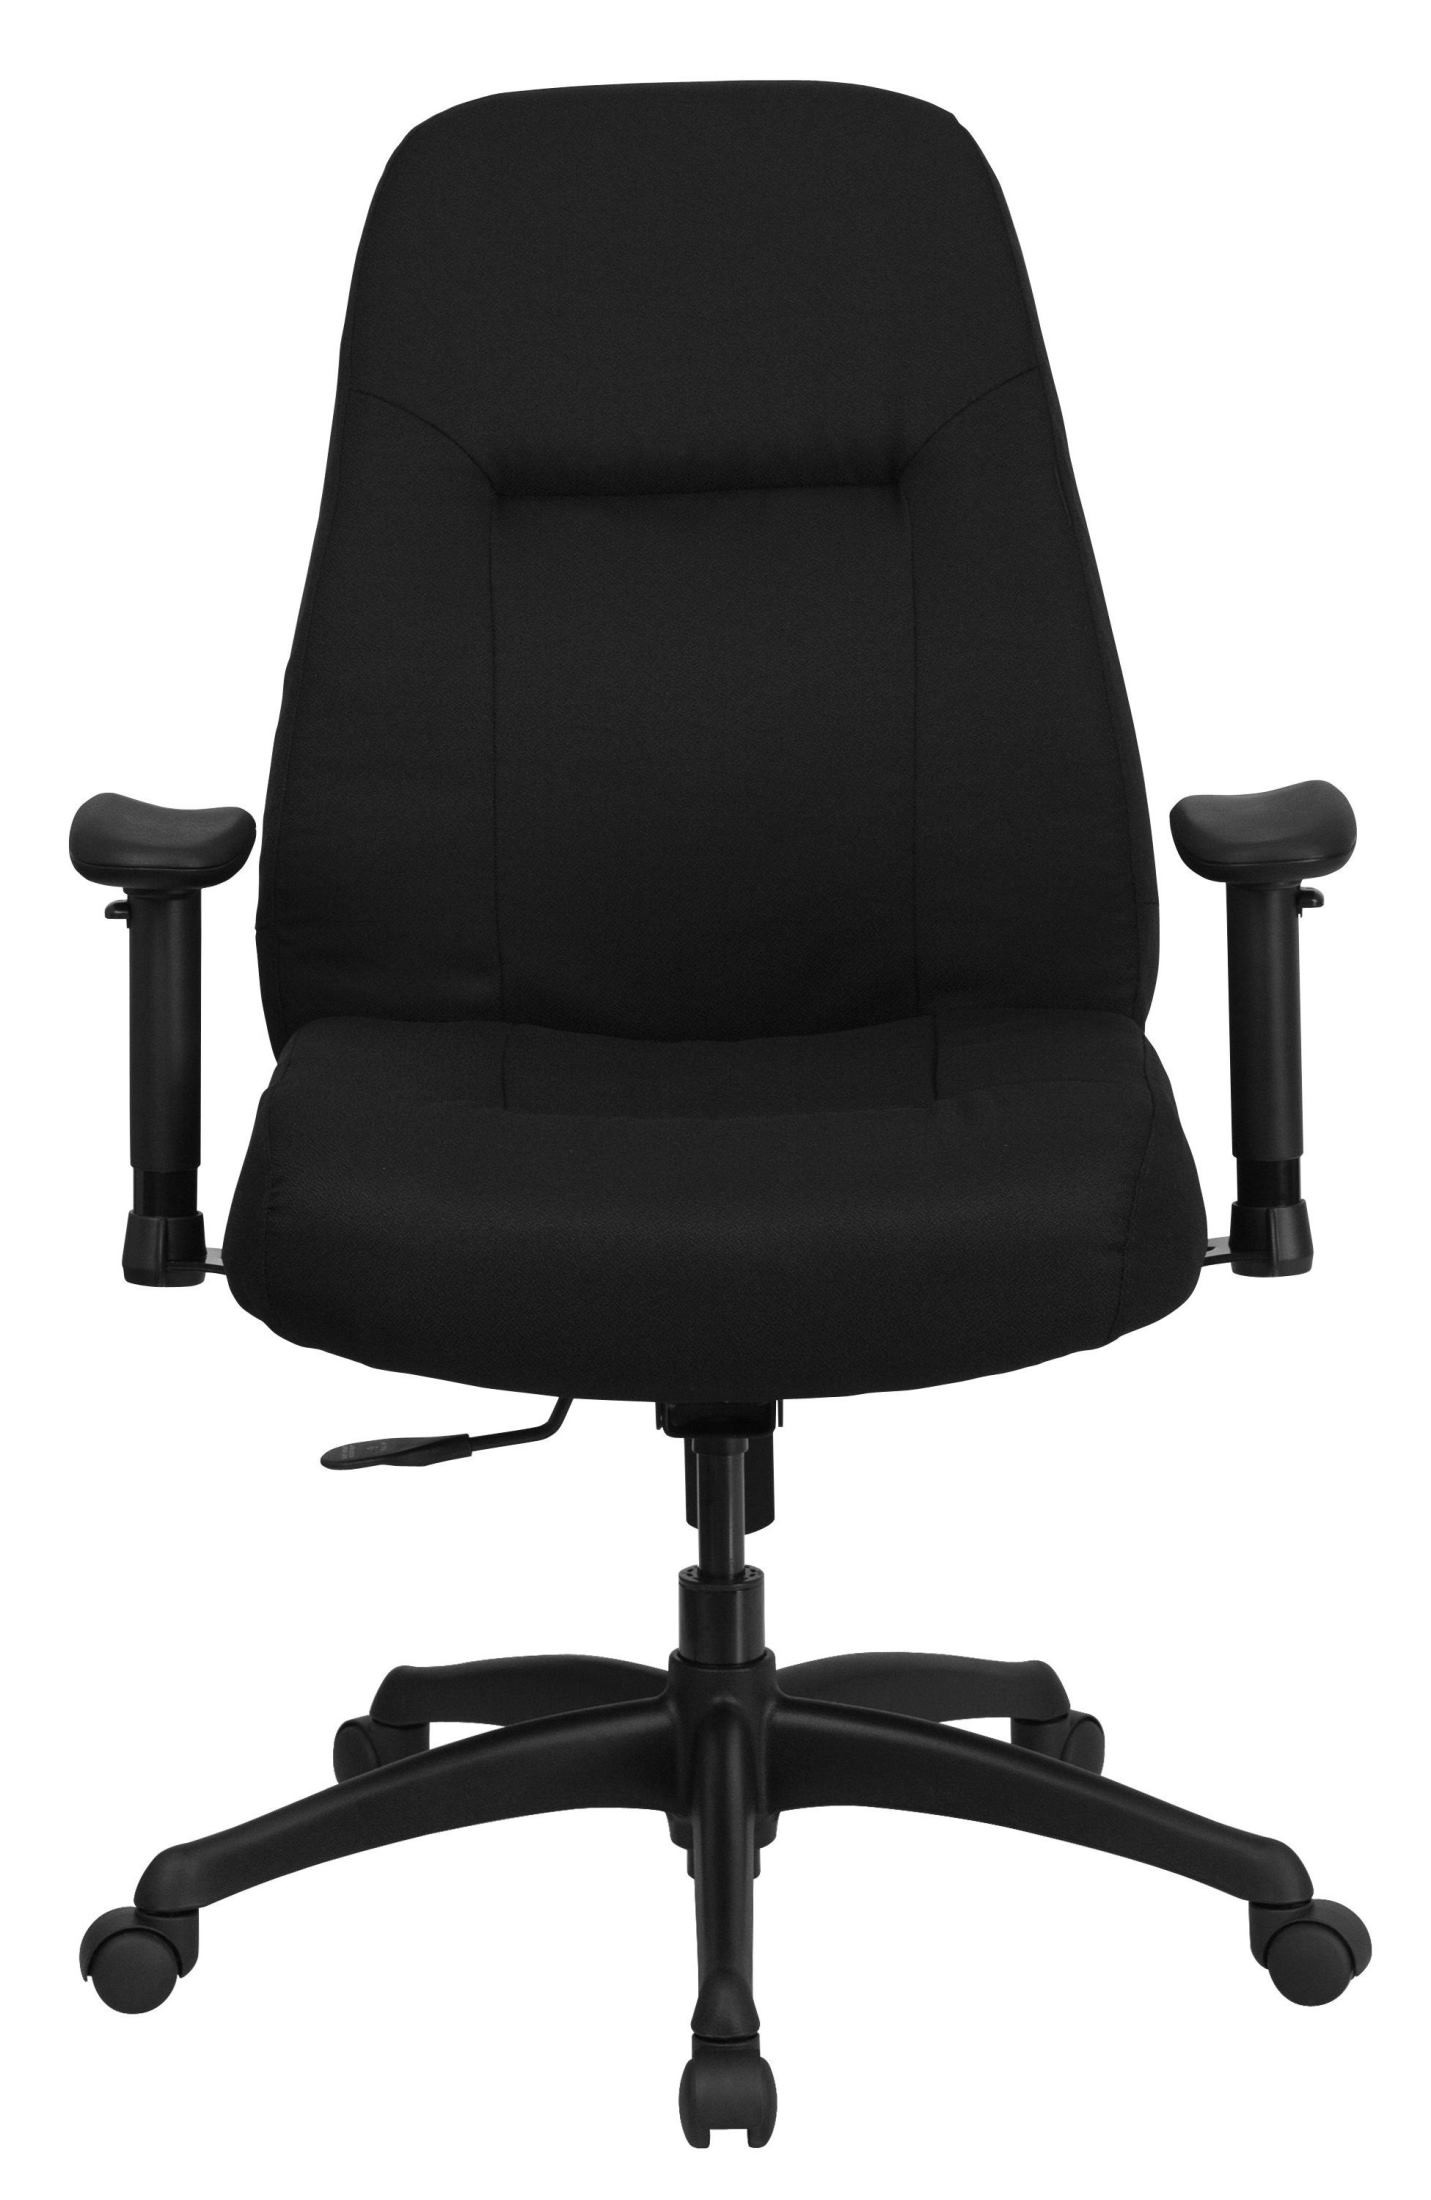 hercules big and tall drafting chair patterned living room chairs high back black fabric arm office